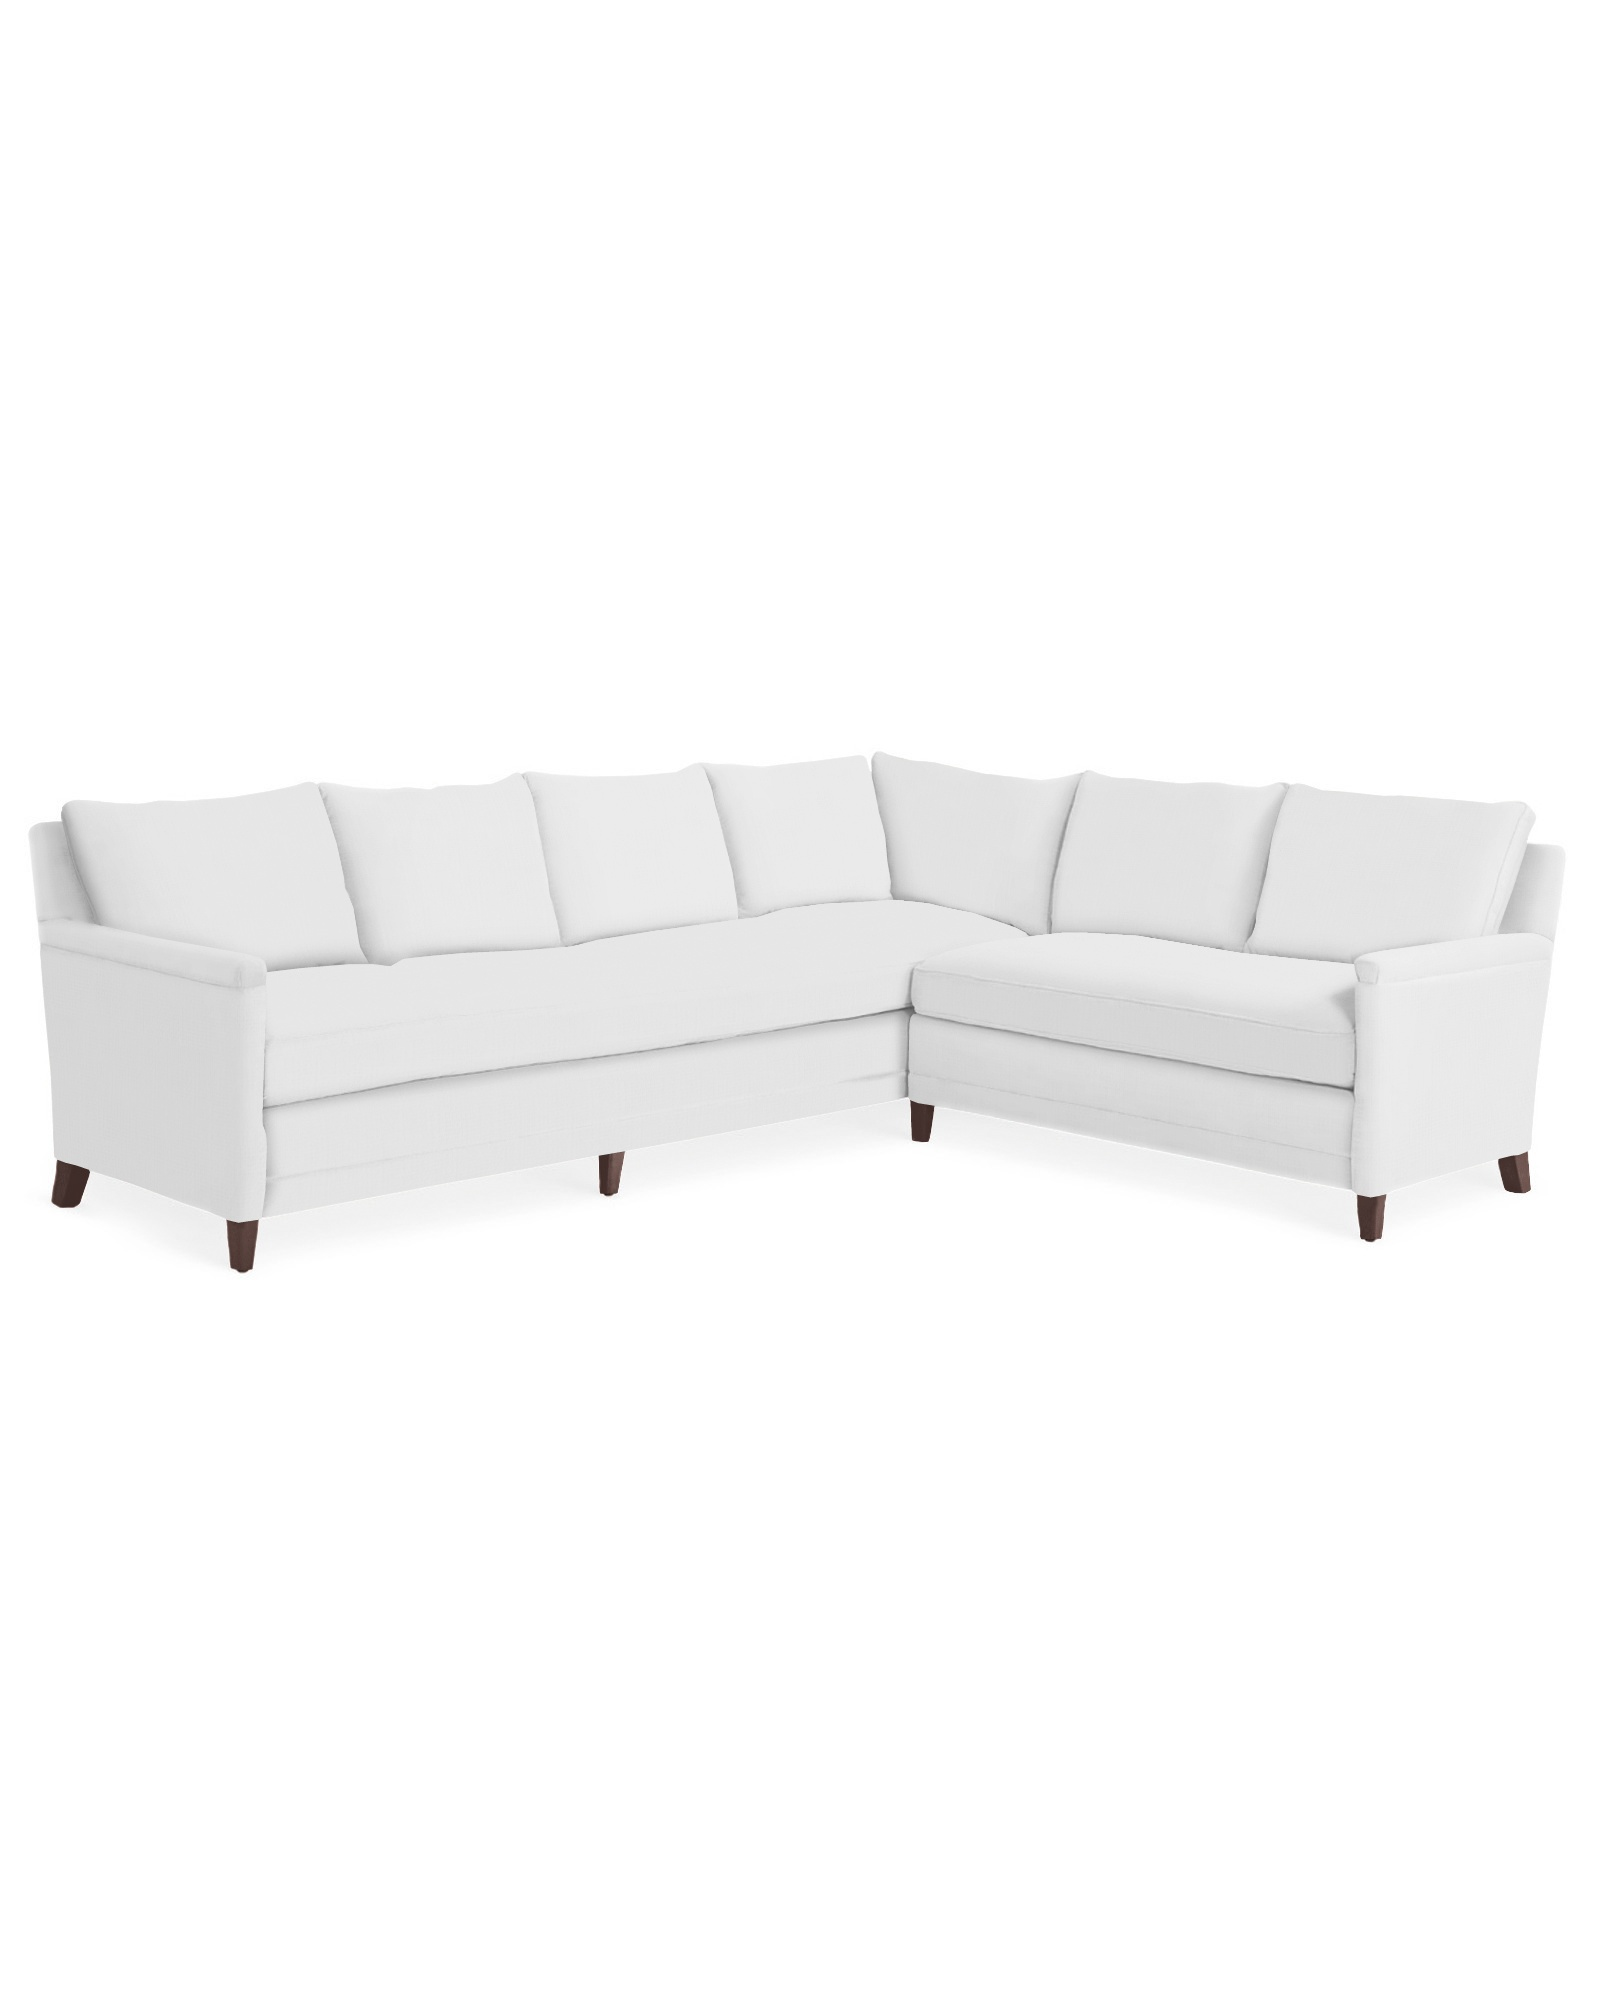 Spruce Street L-Sectional with Bench Seat – Right-Facing